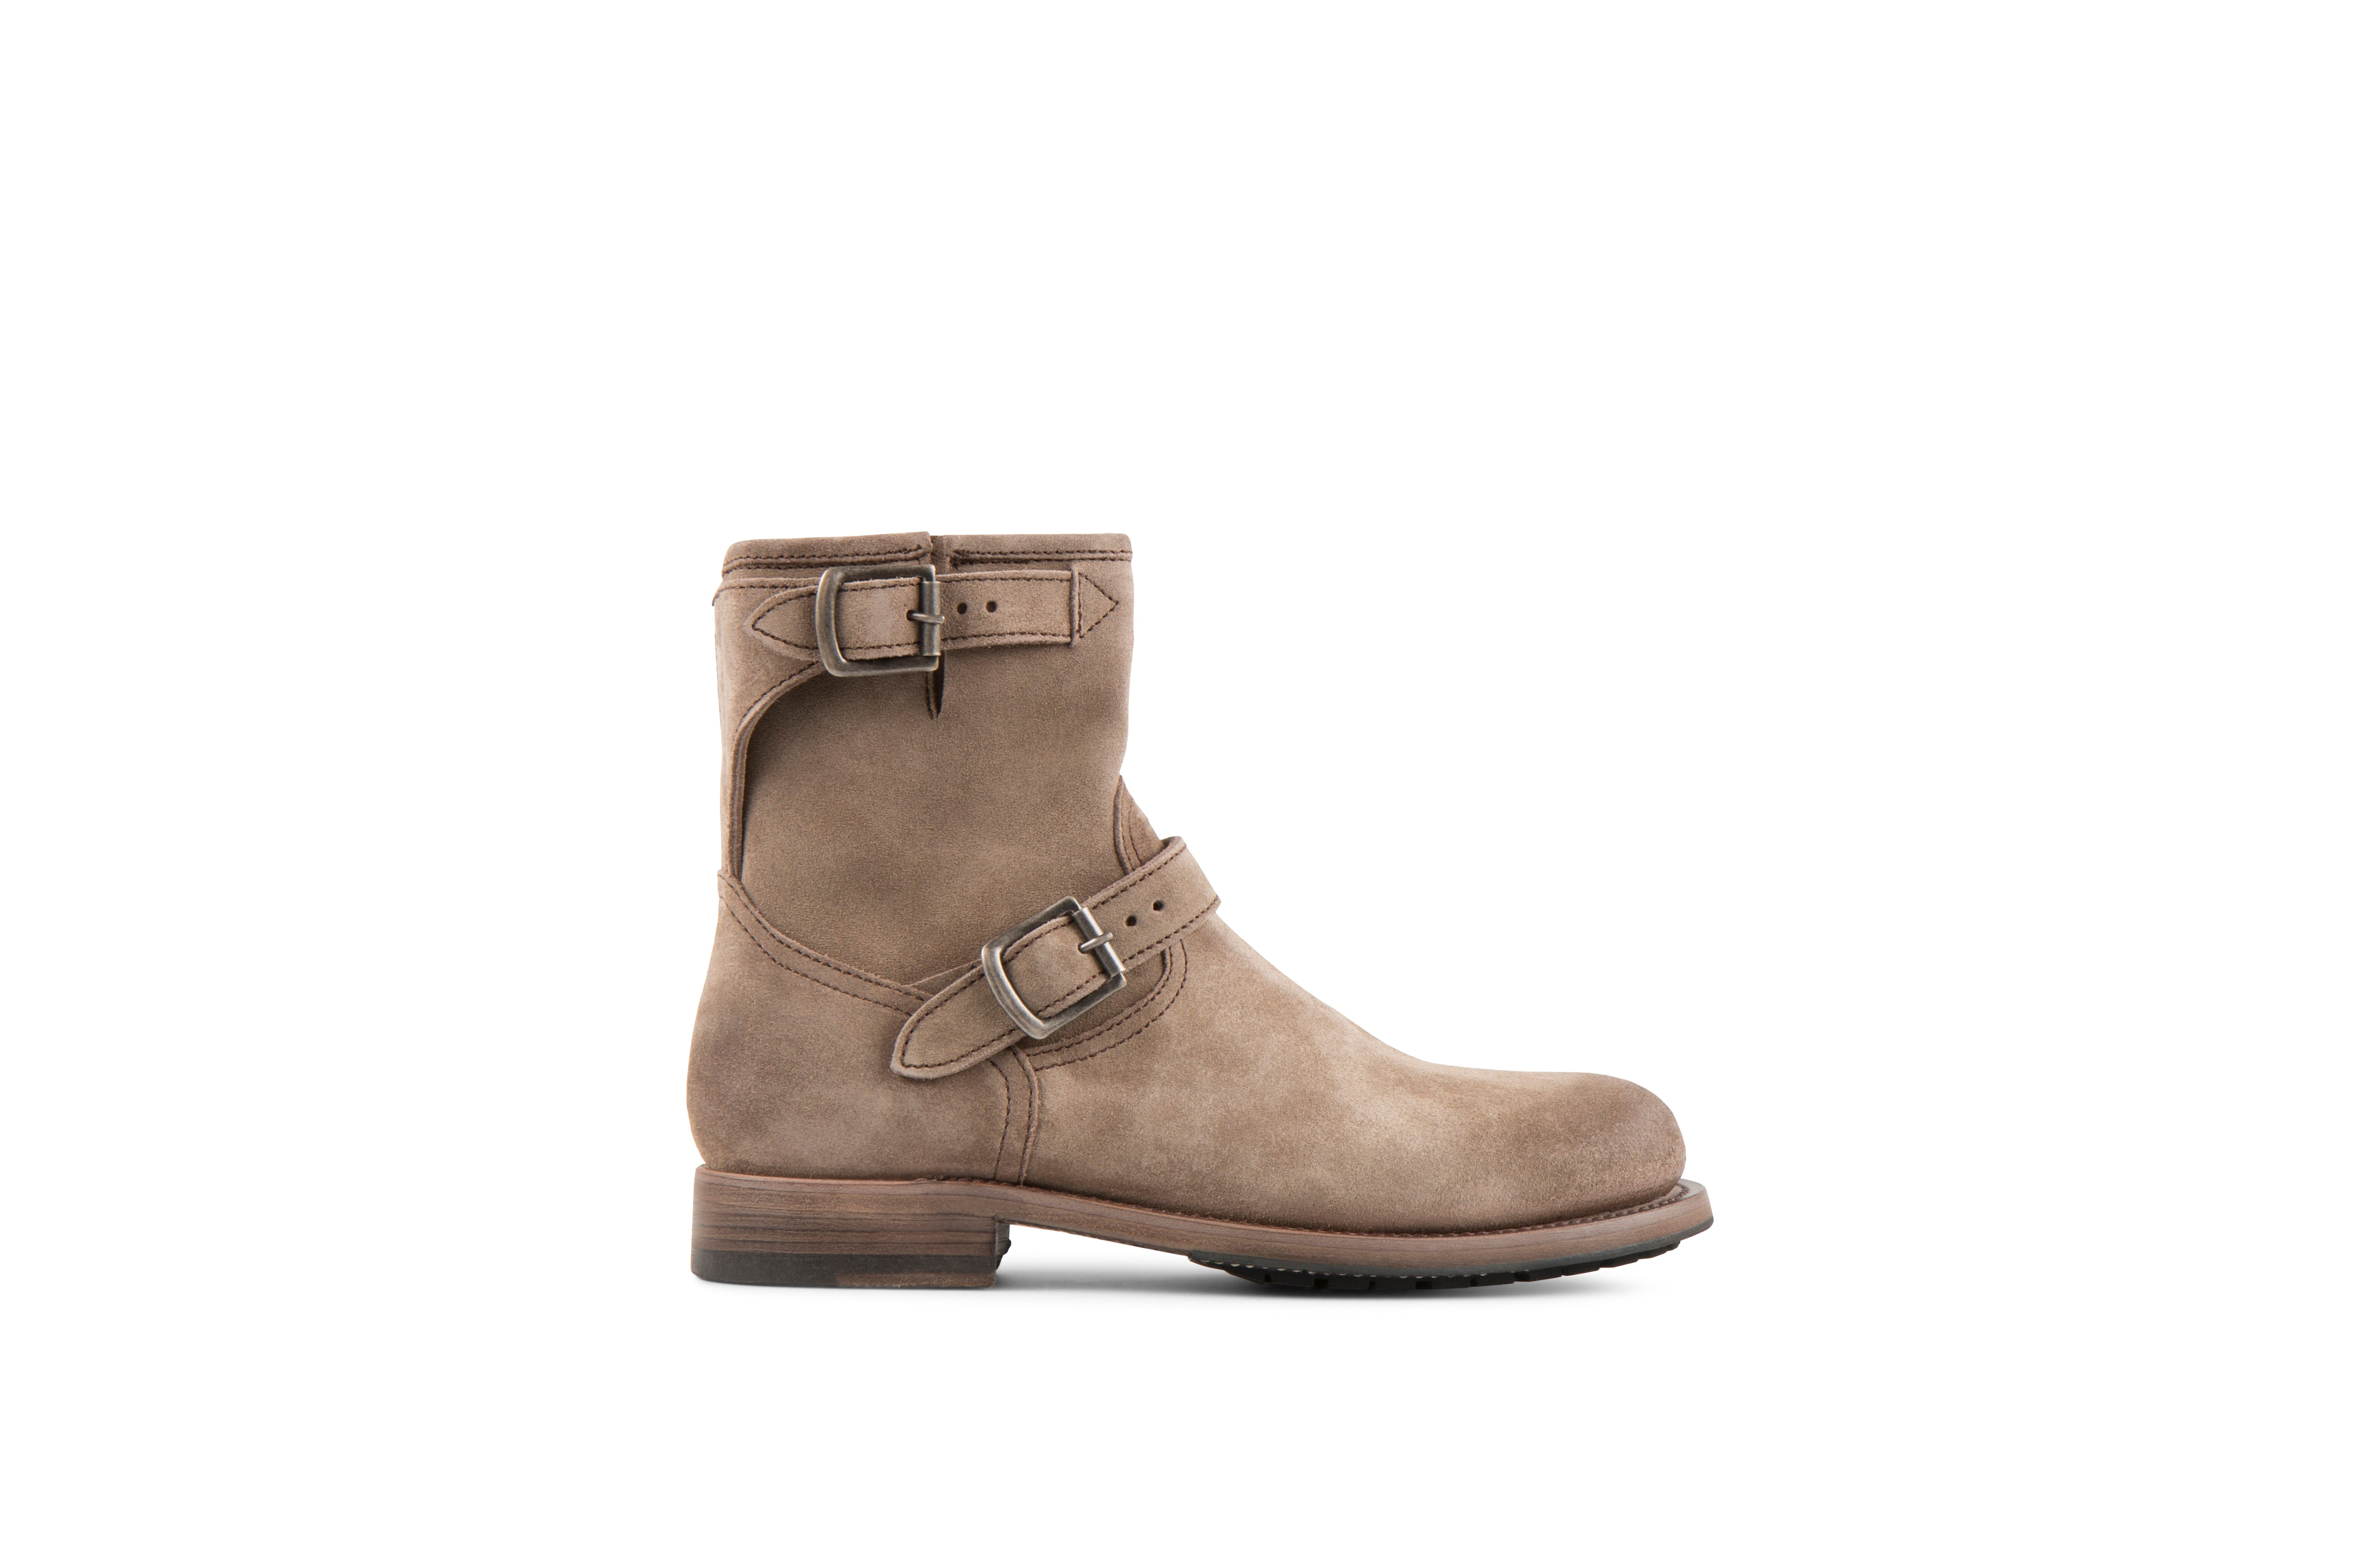 Lowrider Sand Suede Leather Rock Boots